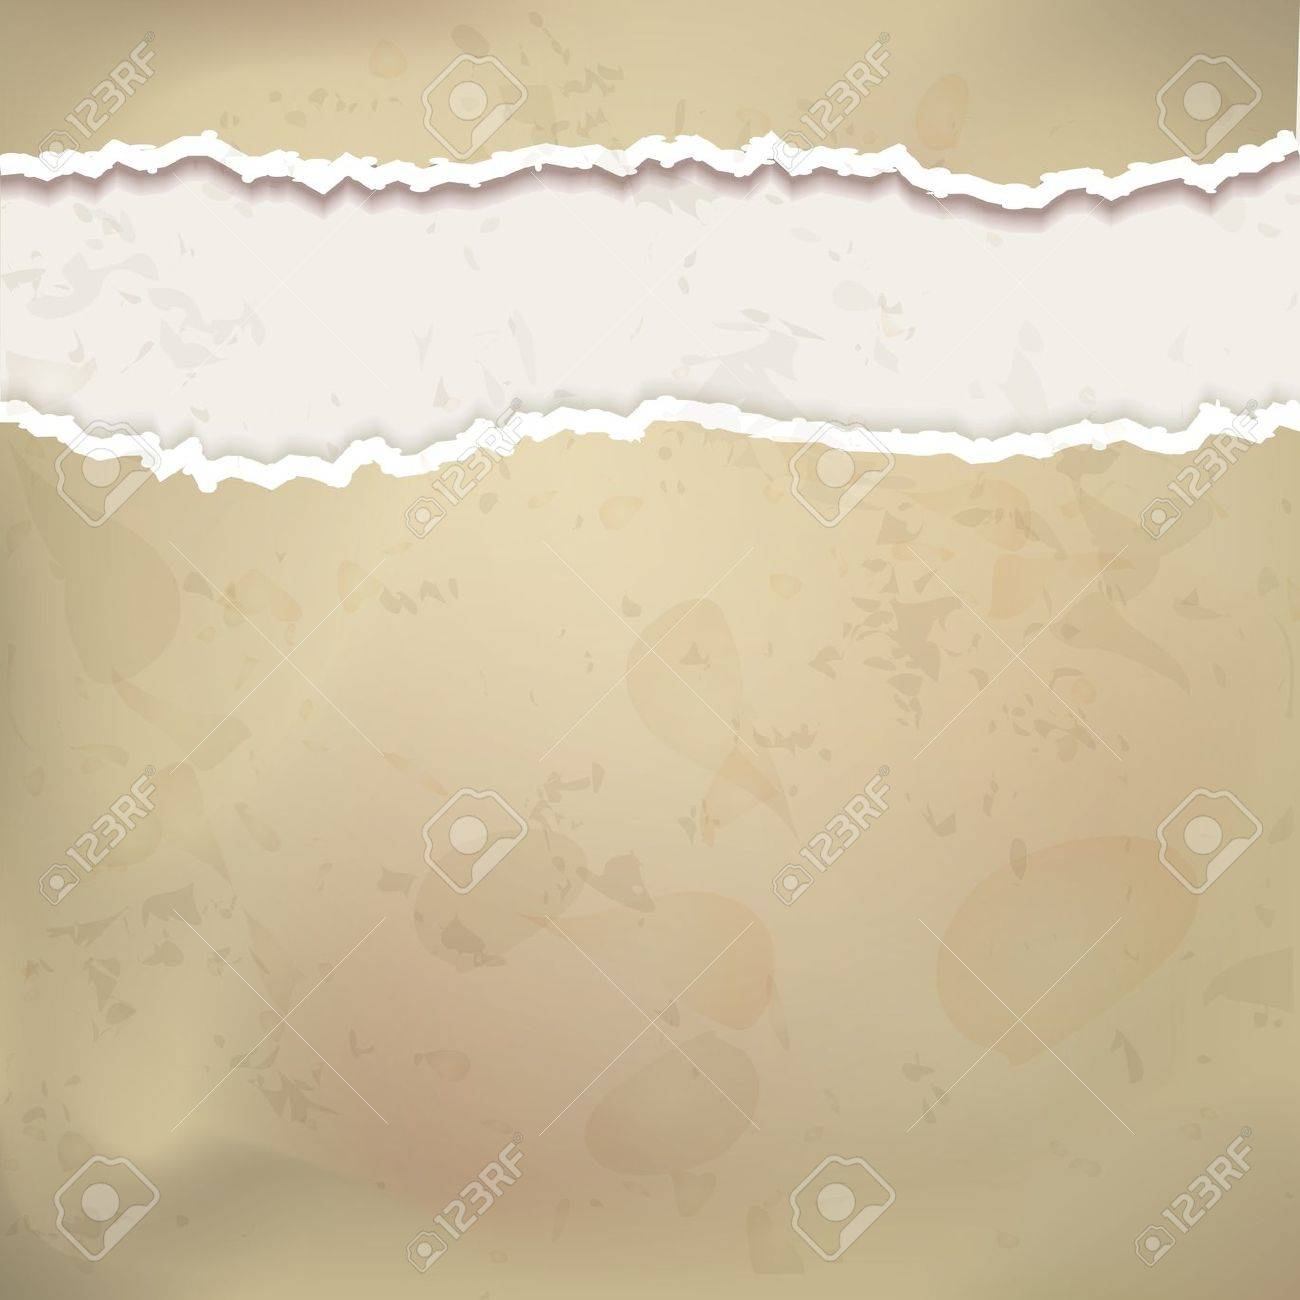 Old Paper Vector Background In Vintage Style Royalty Free Cliparts ...